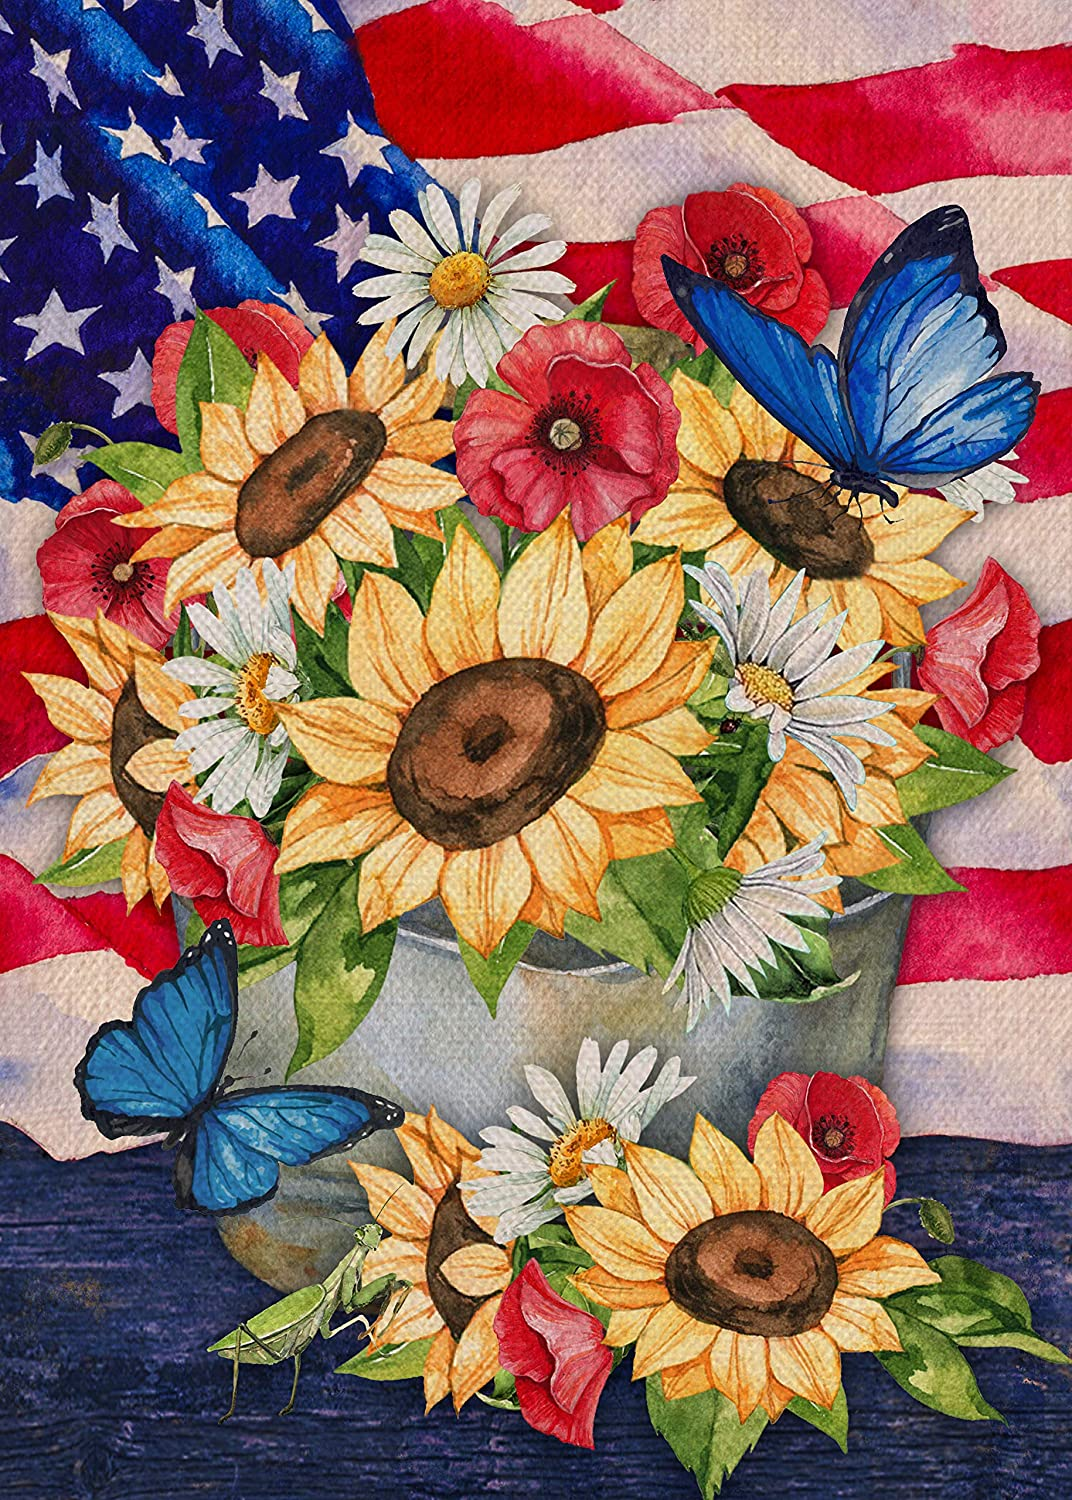 Covido Home Decorative Spring Summer Sunflower Daisy Garden Flag, July 4th House Yard Flower Butterfly Decor, USA Outside Patriotic Decorations American Outdoor Small Burlap Flag Double Sided 12 x 18